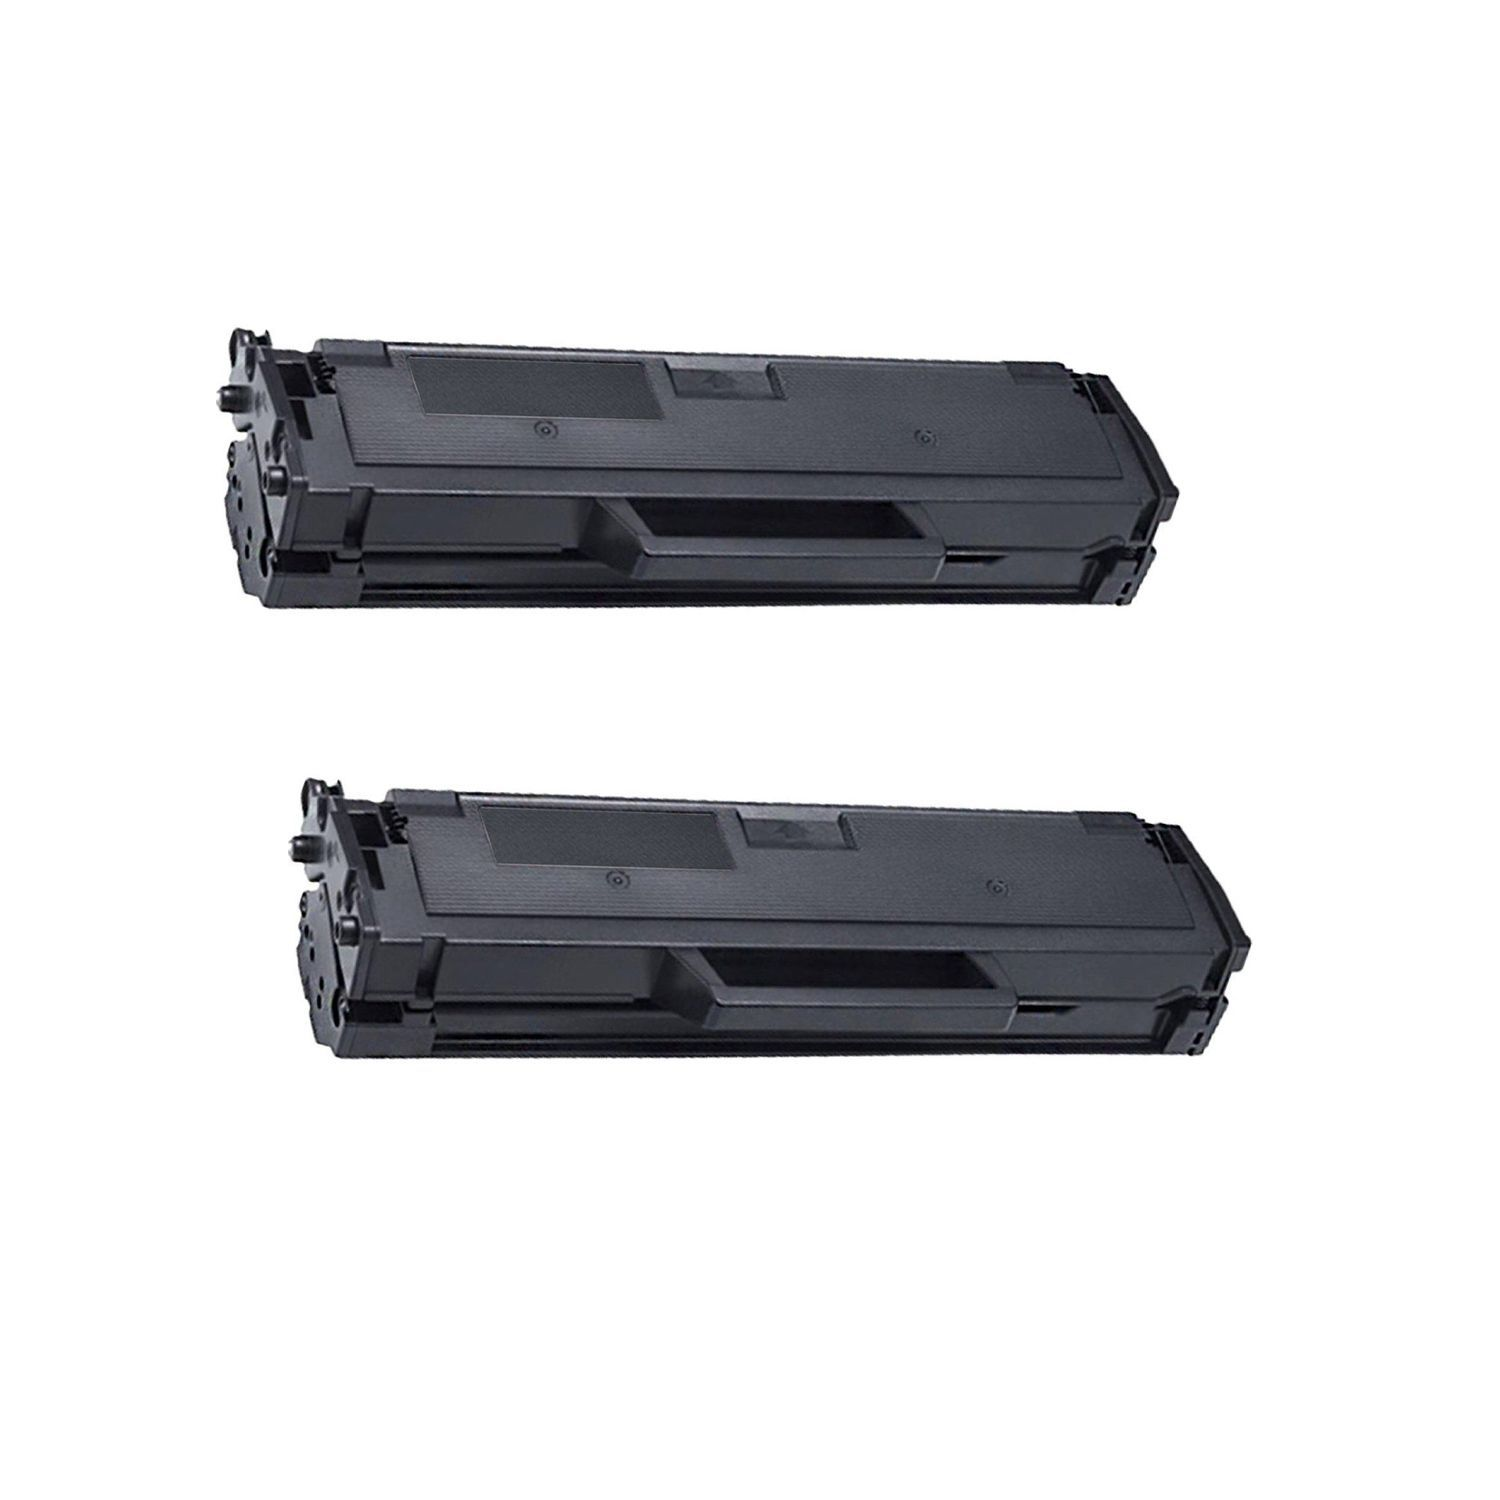 N 2PK Compatible Dell 1160 Toner Cartridge For Dell 1160 Premium Quality Re-Manufactured Toner Cartridge